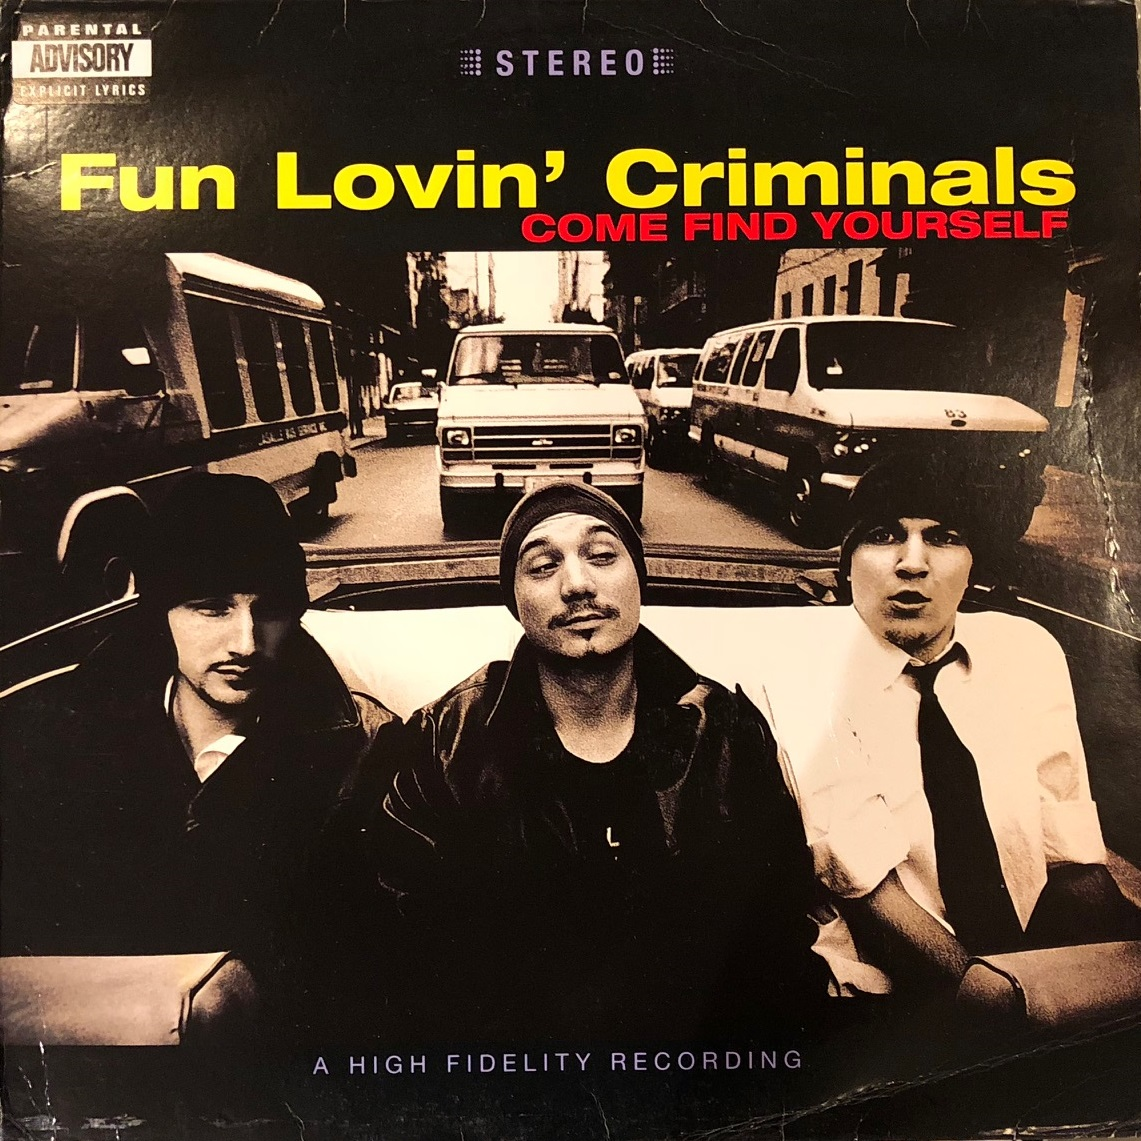 FUN LOVIN' CRIMINALS / COME FIND YOURSELF